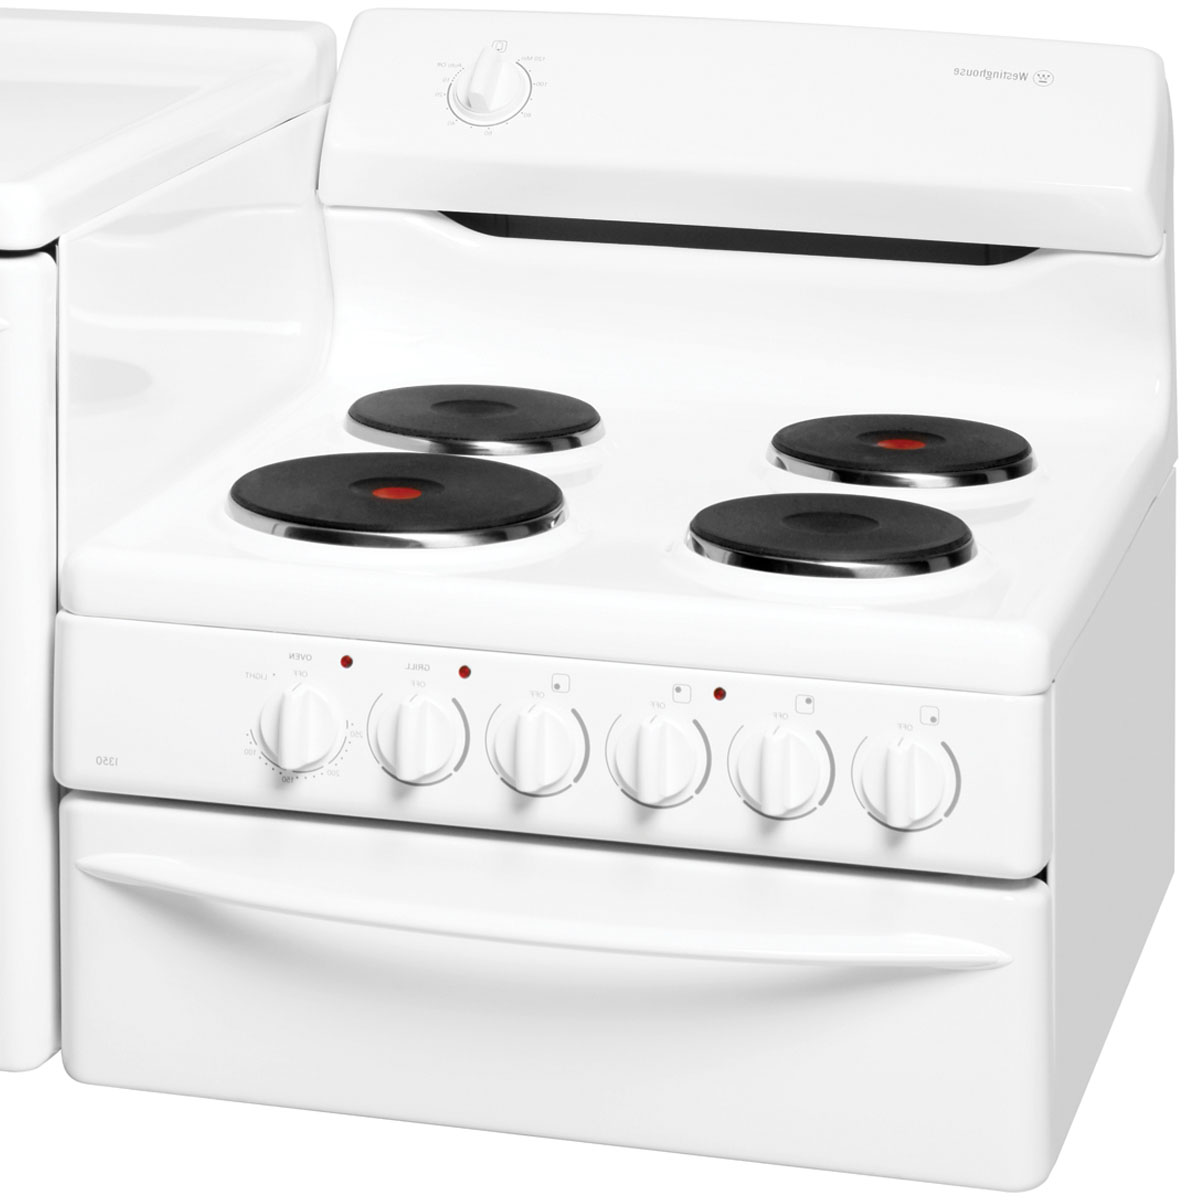 Westinghouse Kitchen Appliances Westinghouse Pek1350lw Elevated Electric Oven Home Clearance